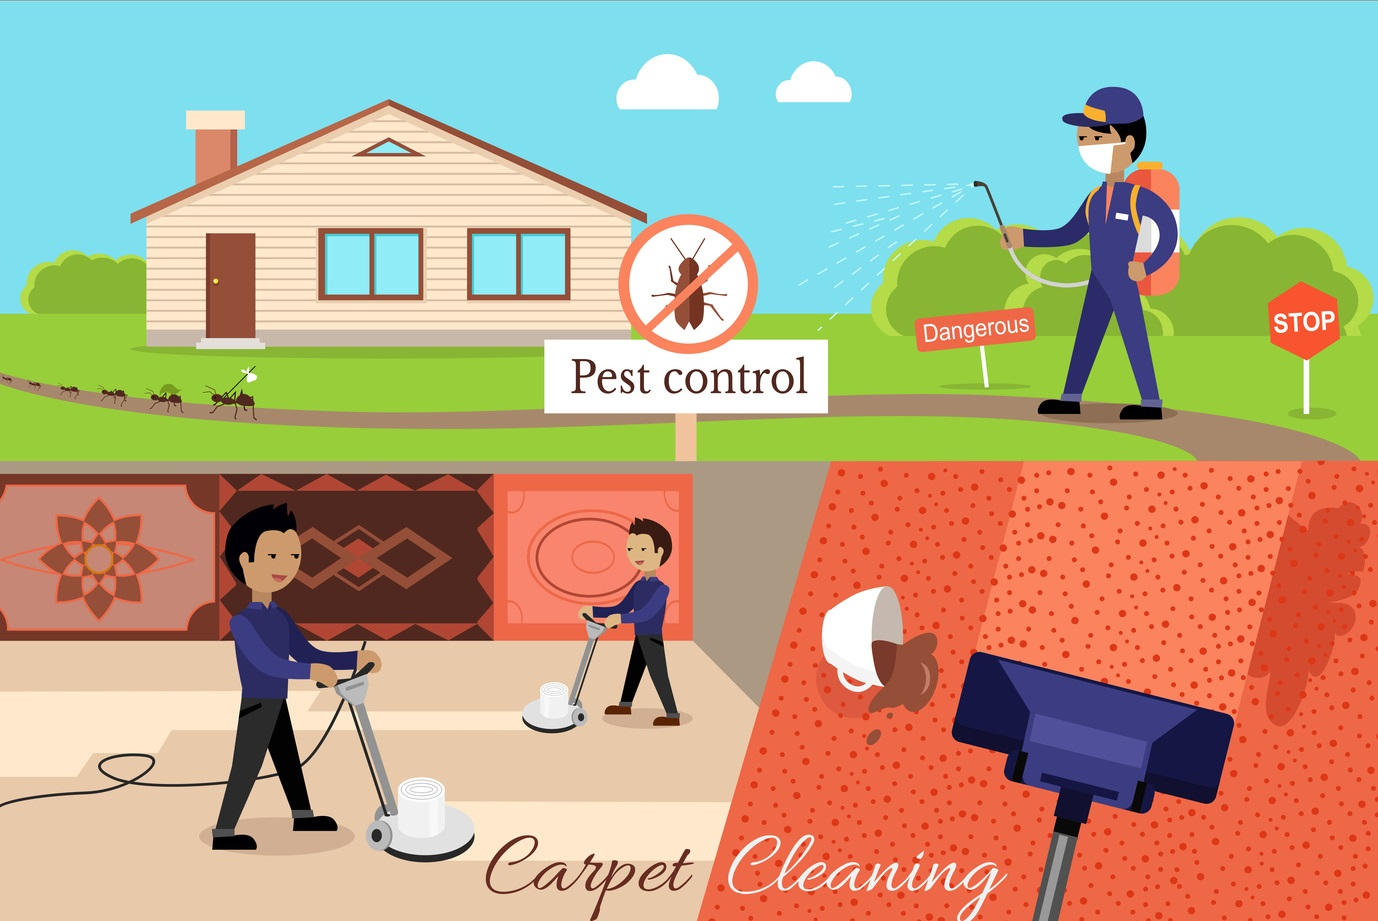 Excellent Carpet Cleaning and Pest Management Business